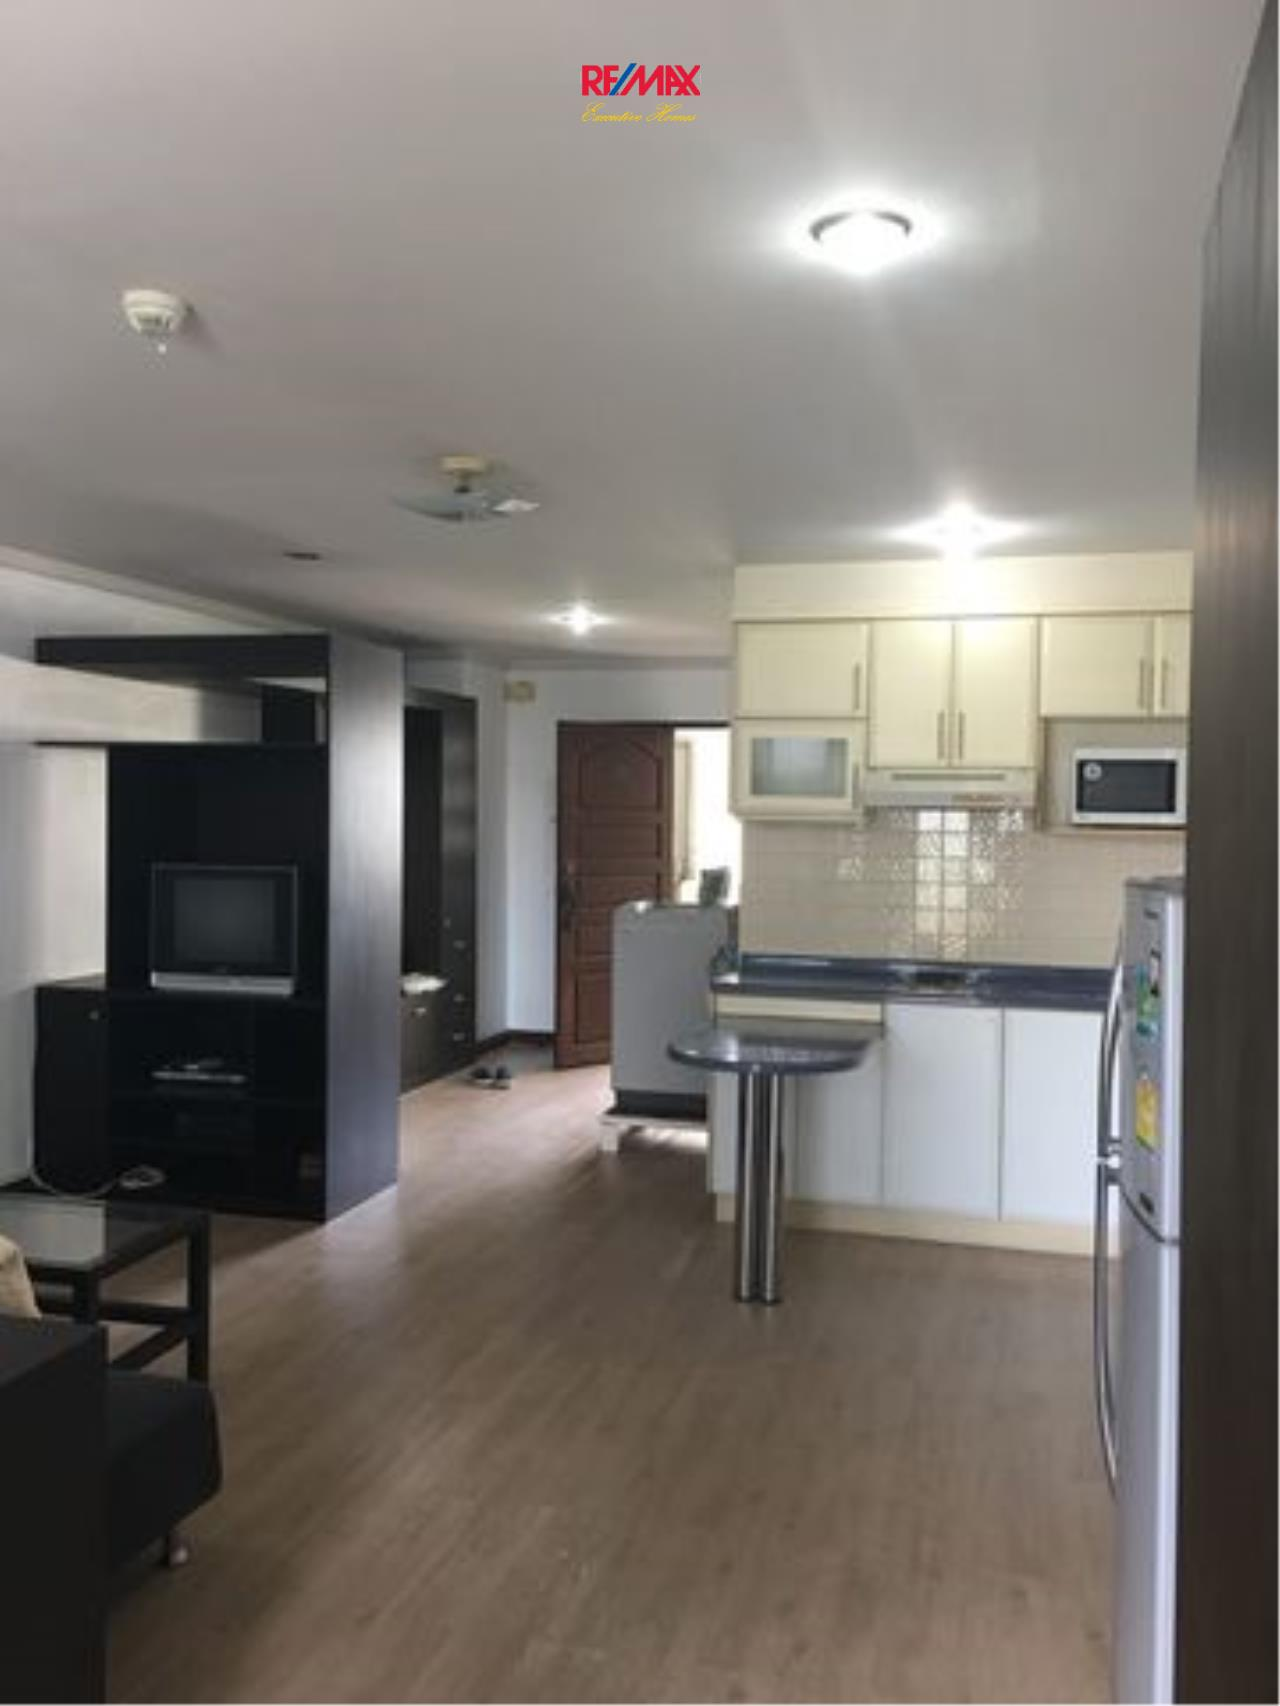 RE/MAX Executive Homes Agency's Spacious 1 Bedroom for Rent Supalai Place 39 2